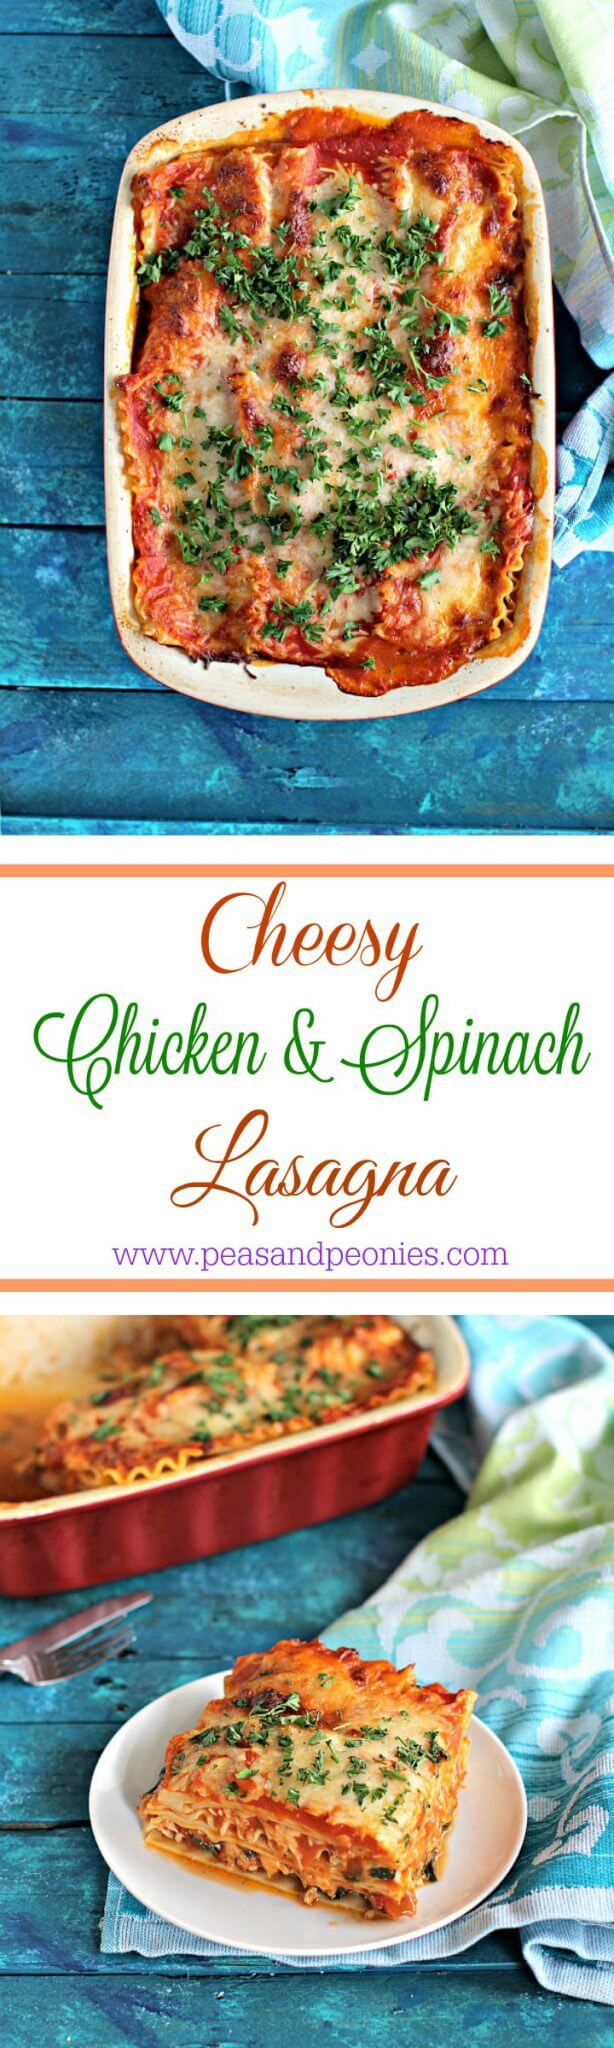 My best chicken spinach lasagna is easy to make, loaded with lean chicken and spinach for a nutritional boost. Delicious, and stores well.